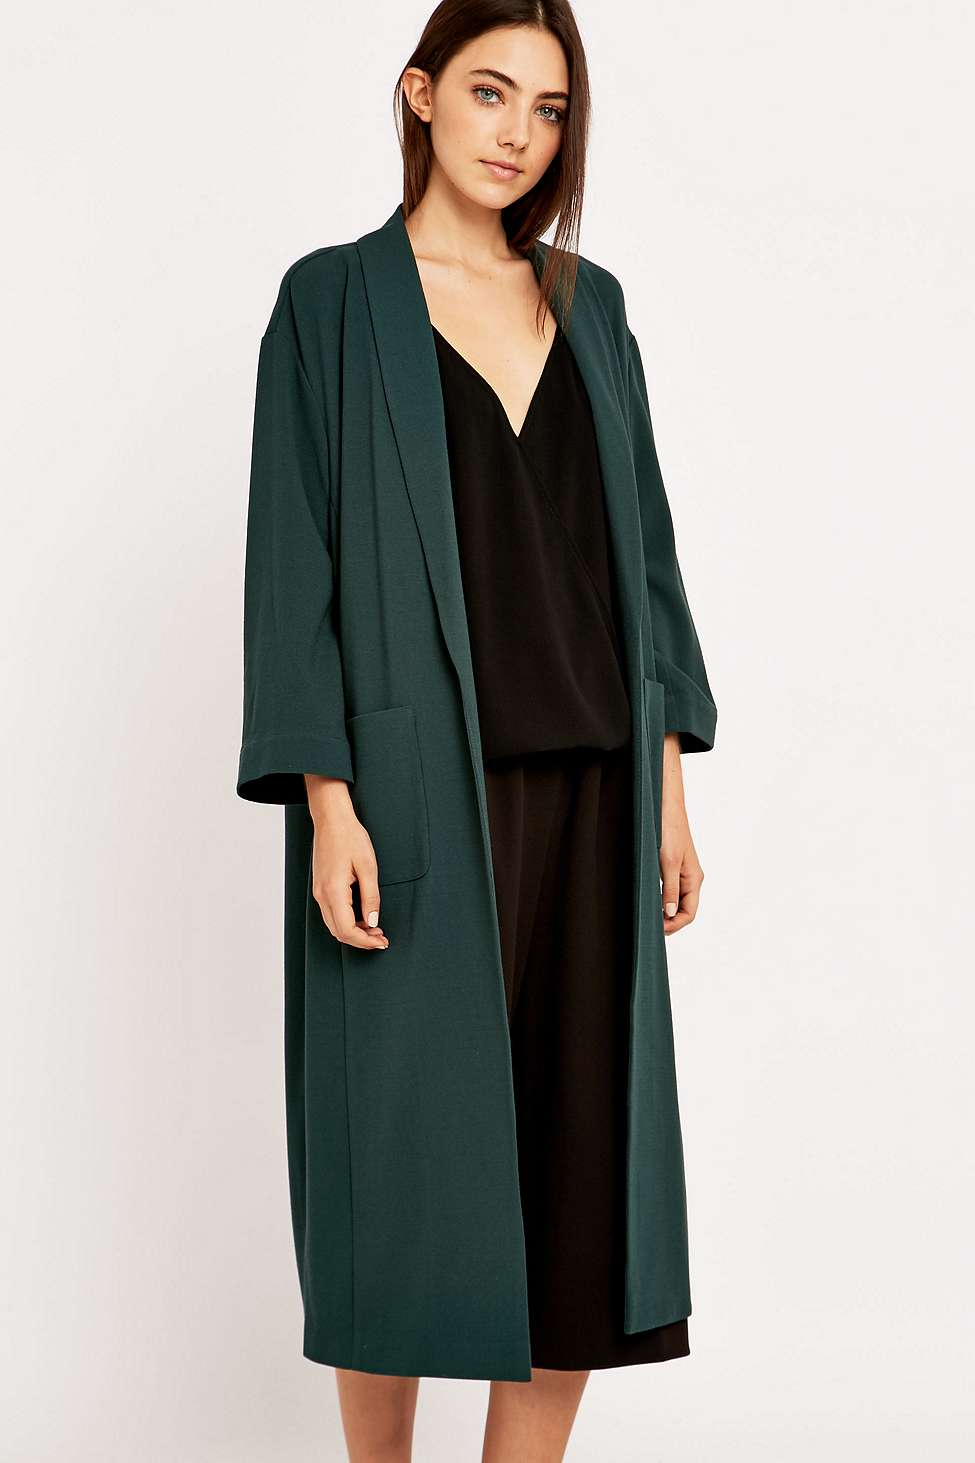 Urban Outfitter - blazer long